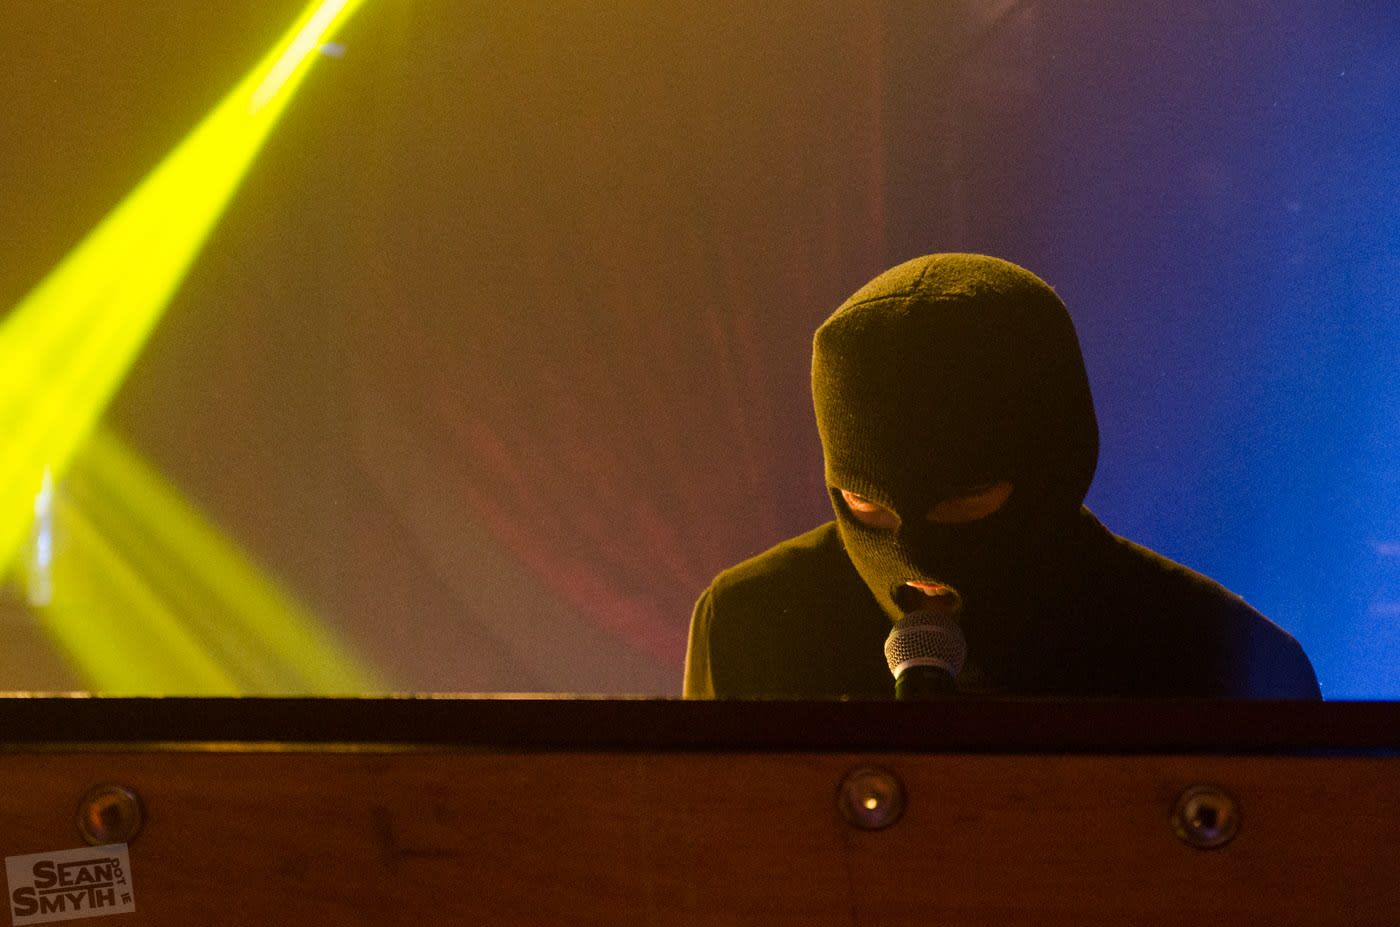 twenty-one-pilots-at-the-academy-by-sean-smyth-16-11-14-14-of-41_15187364853_o